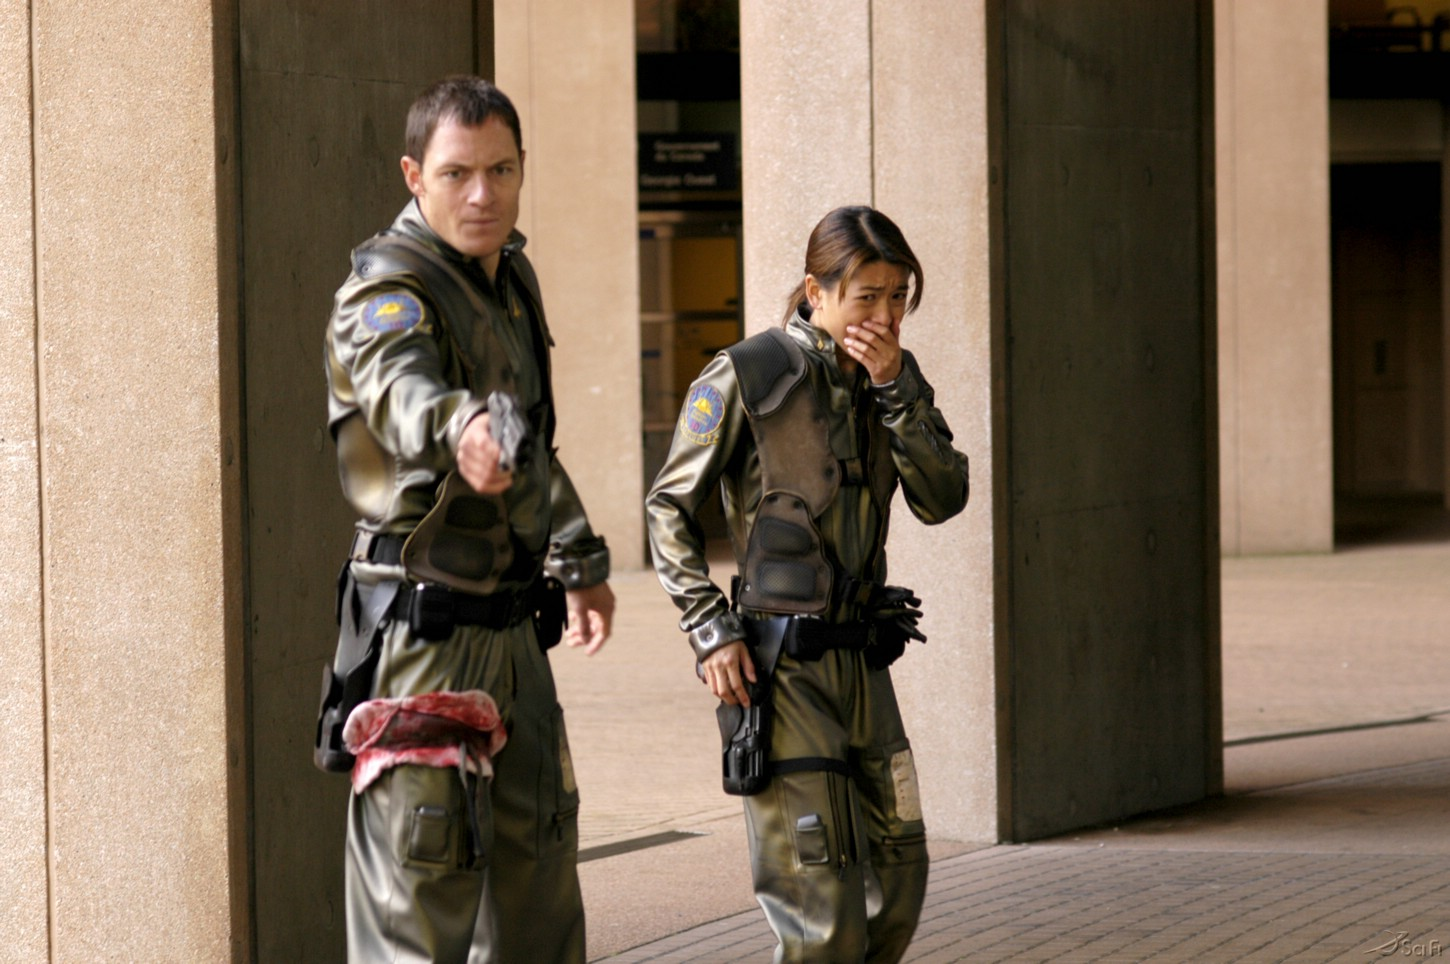 Grace Park and Tahmoh Penikett in Battlestar Galactica (2004)